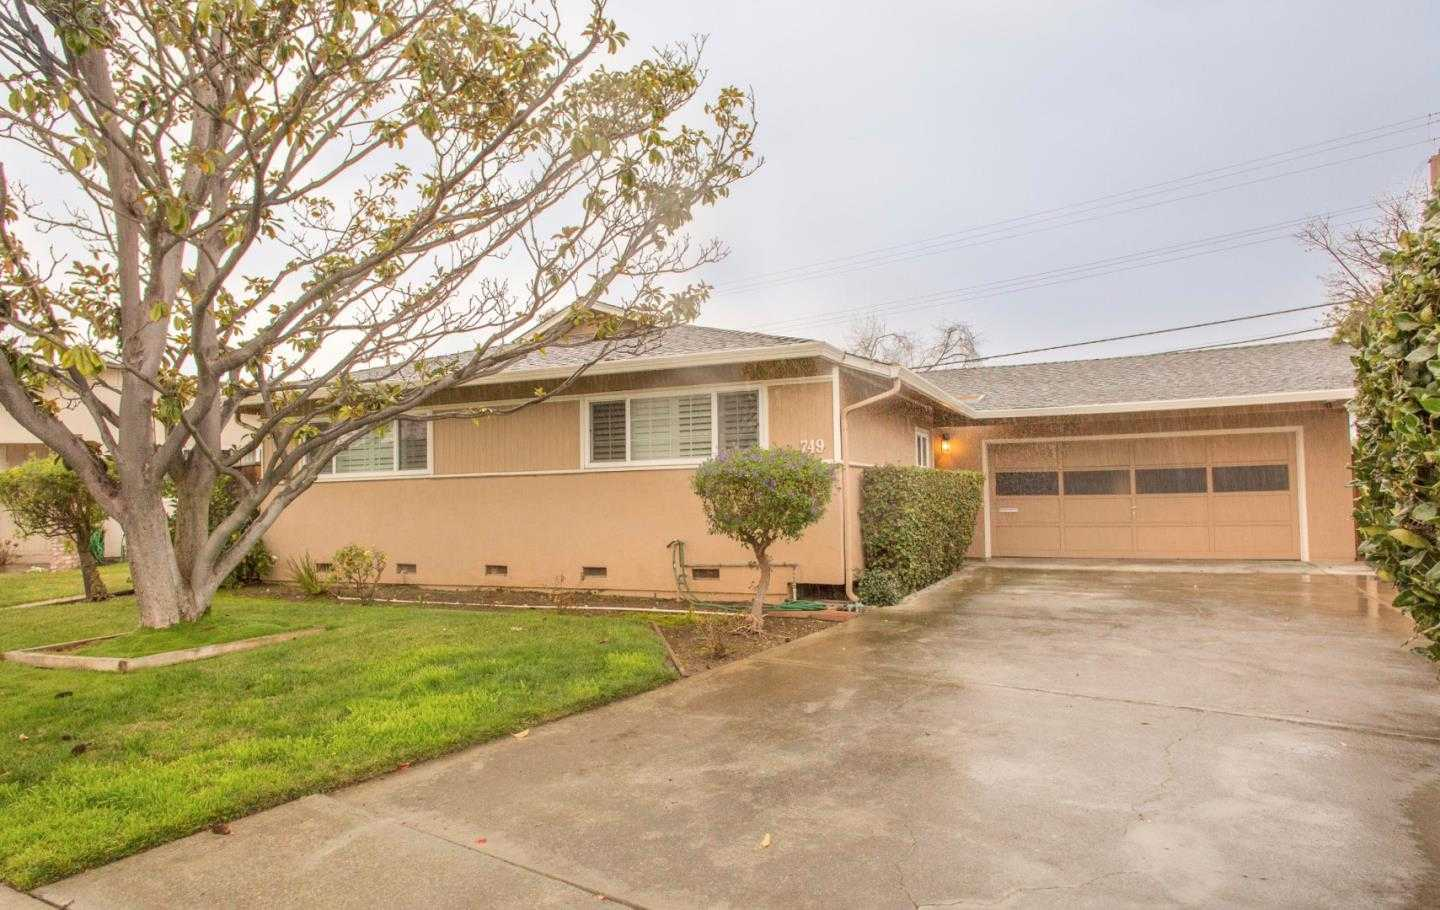 $2,299,999 - 4Br/3Ba -  for Sale in Sunnyvale